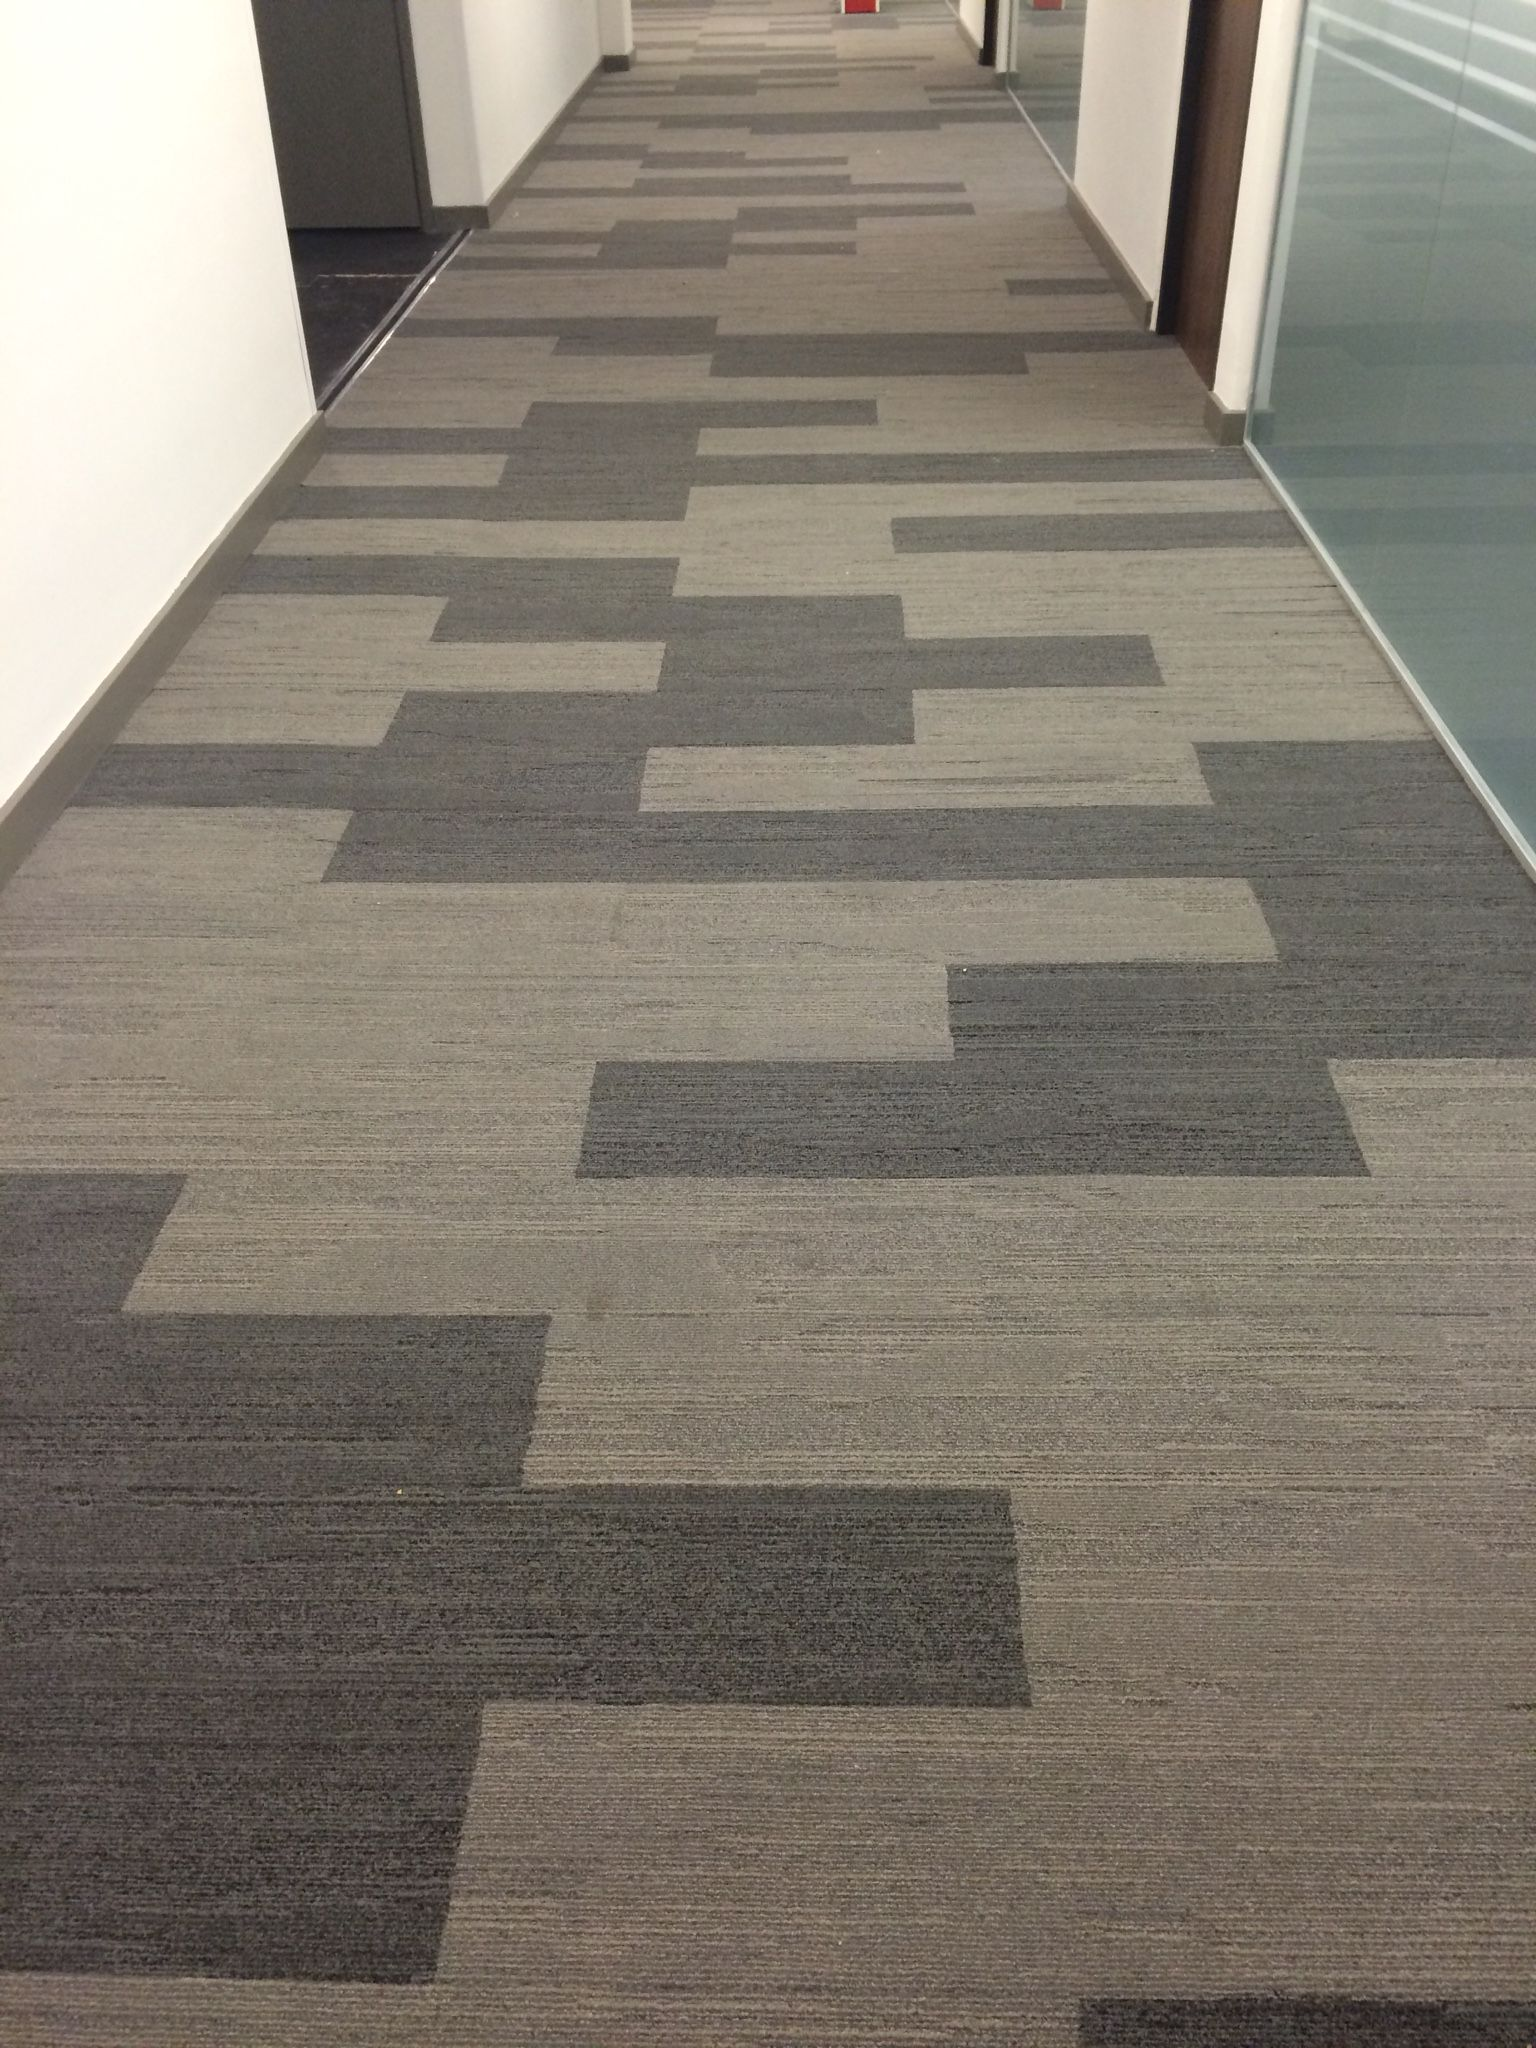 Commercial Flooring From Carpet Tiles Carpet Tiles Design